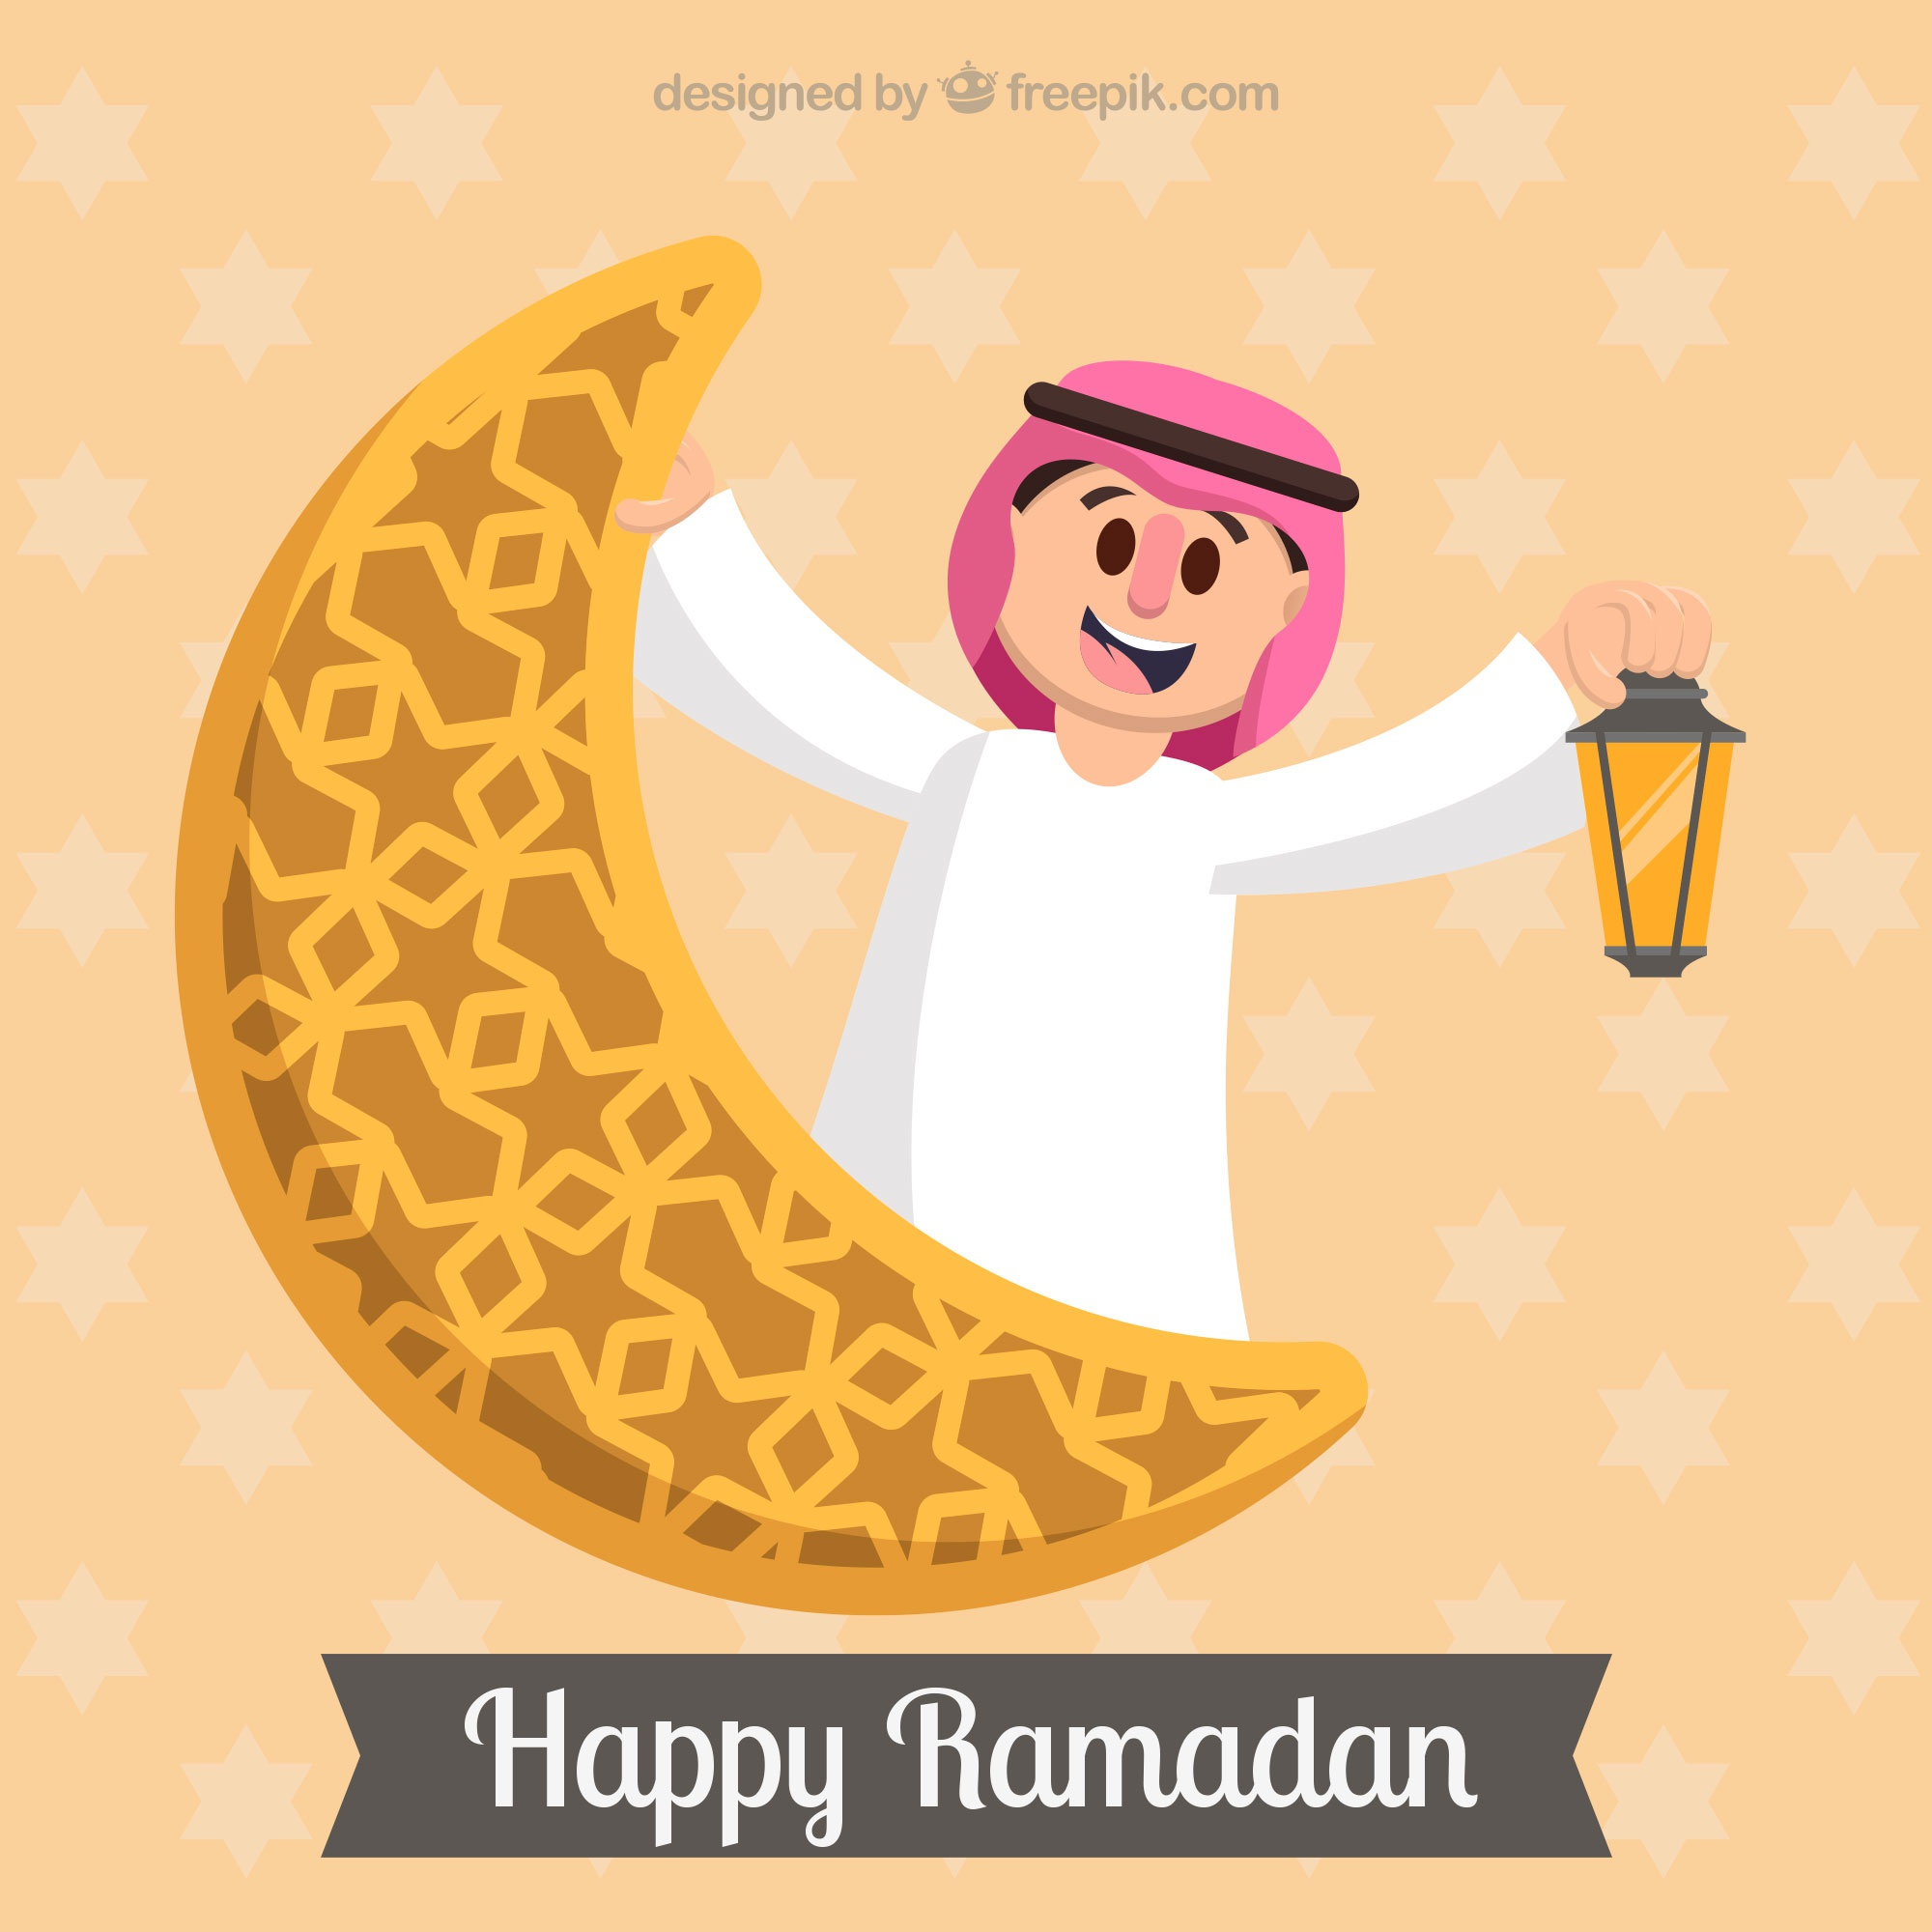 Ramadan background with smiling man and ornamental moon